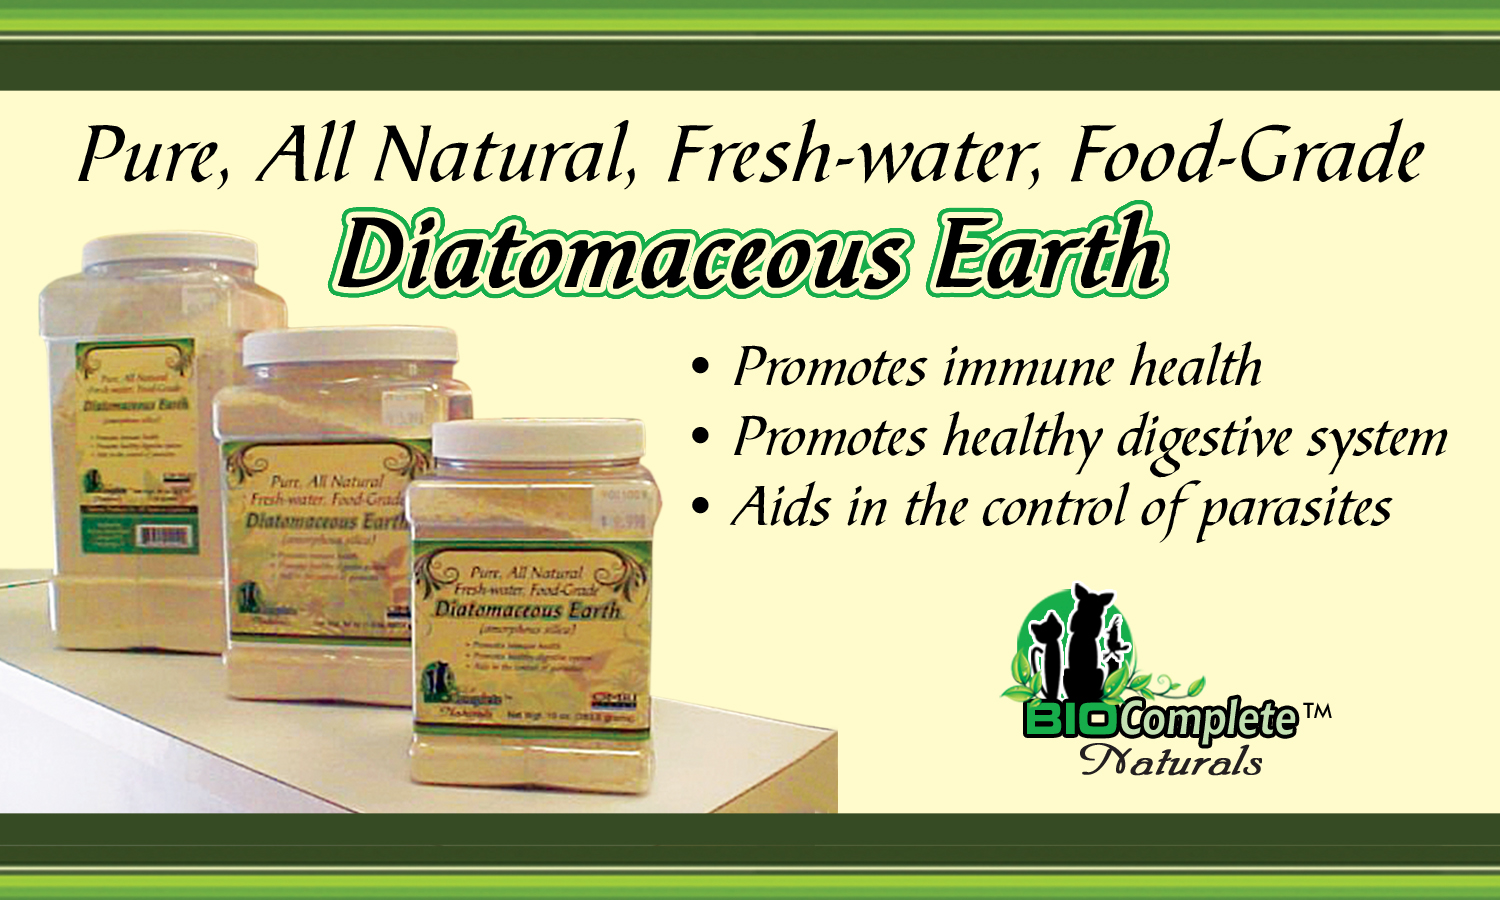 Estimated 1,500 Ways DE Is Beneficial To Humans, Plants And Animals. Click For More Information And To Purchase